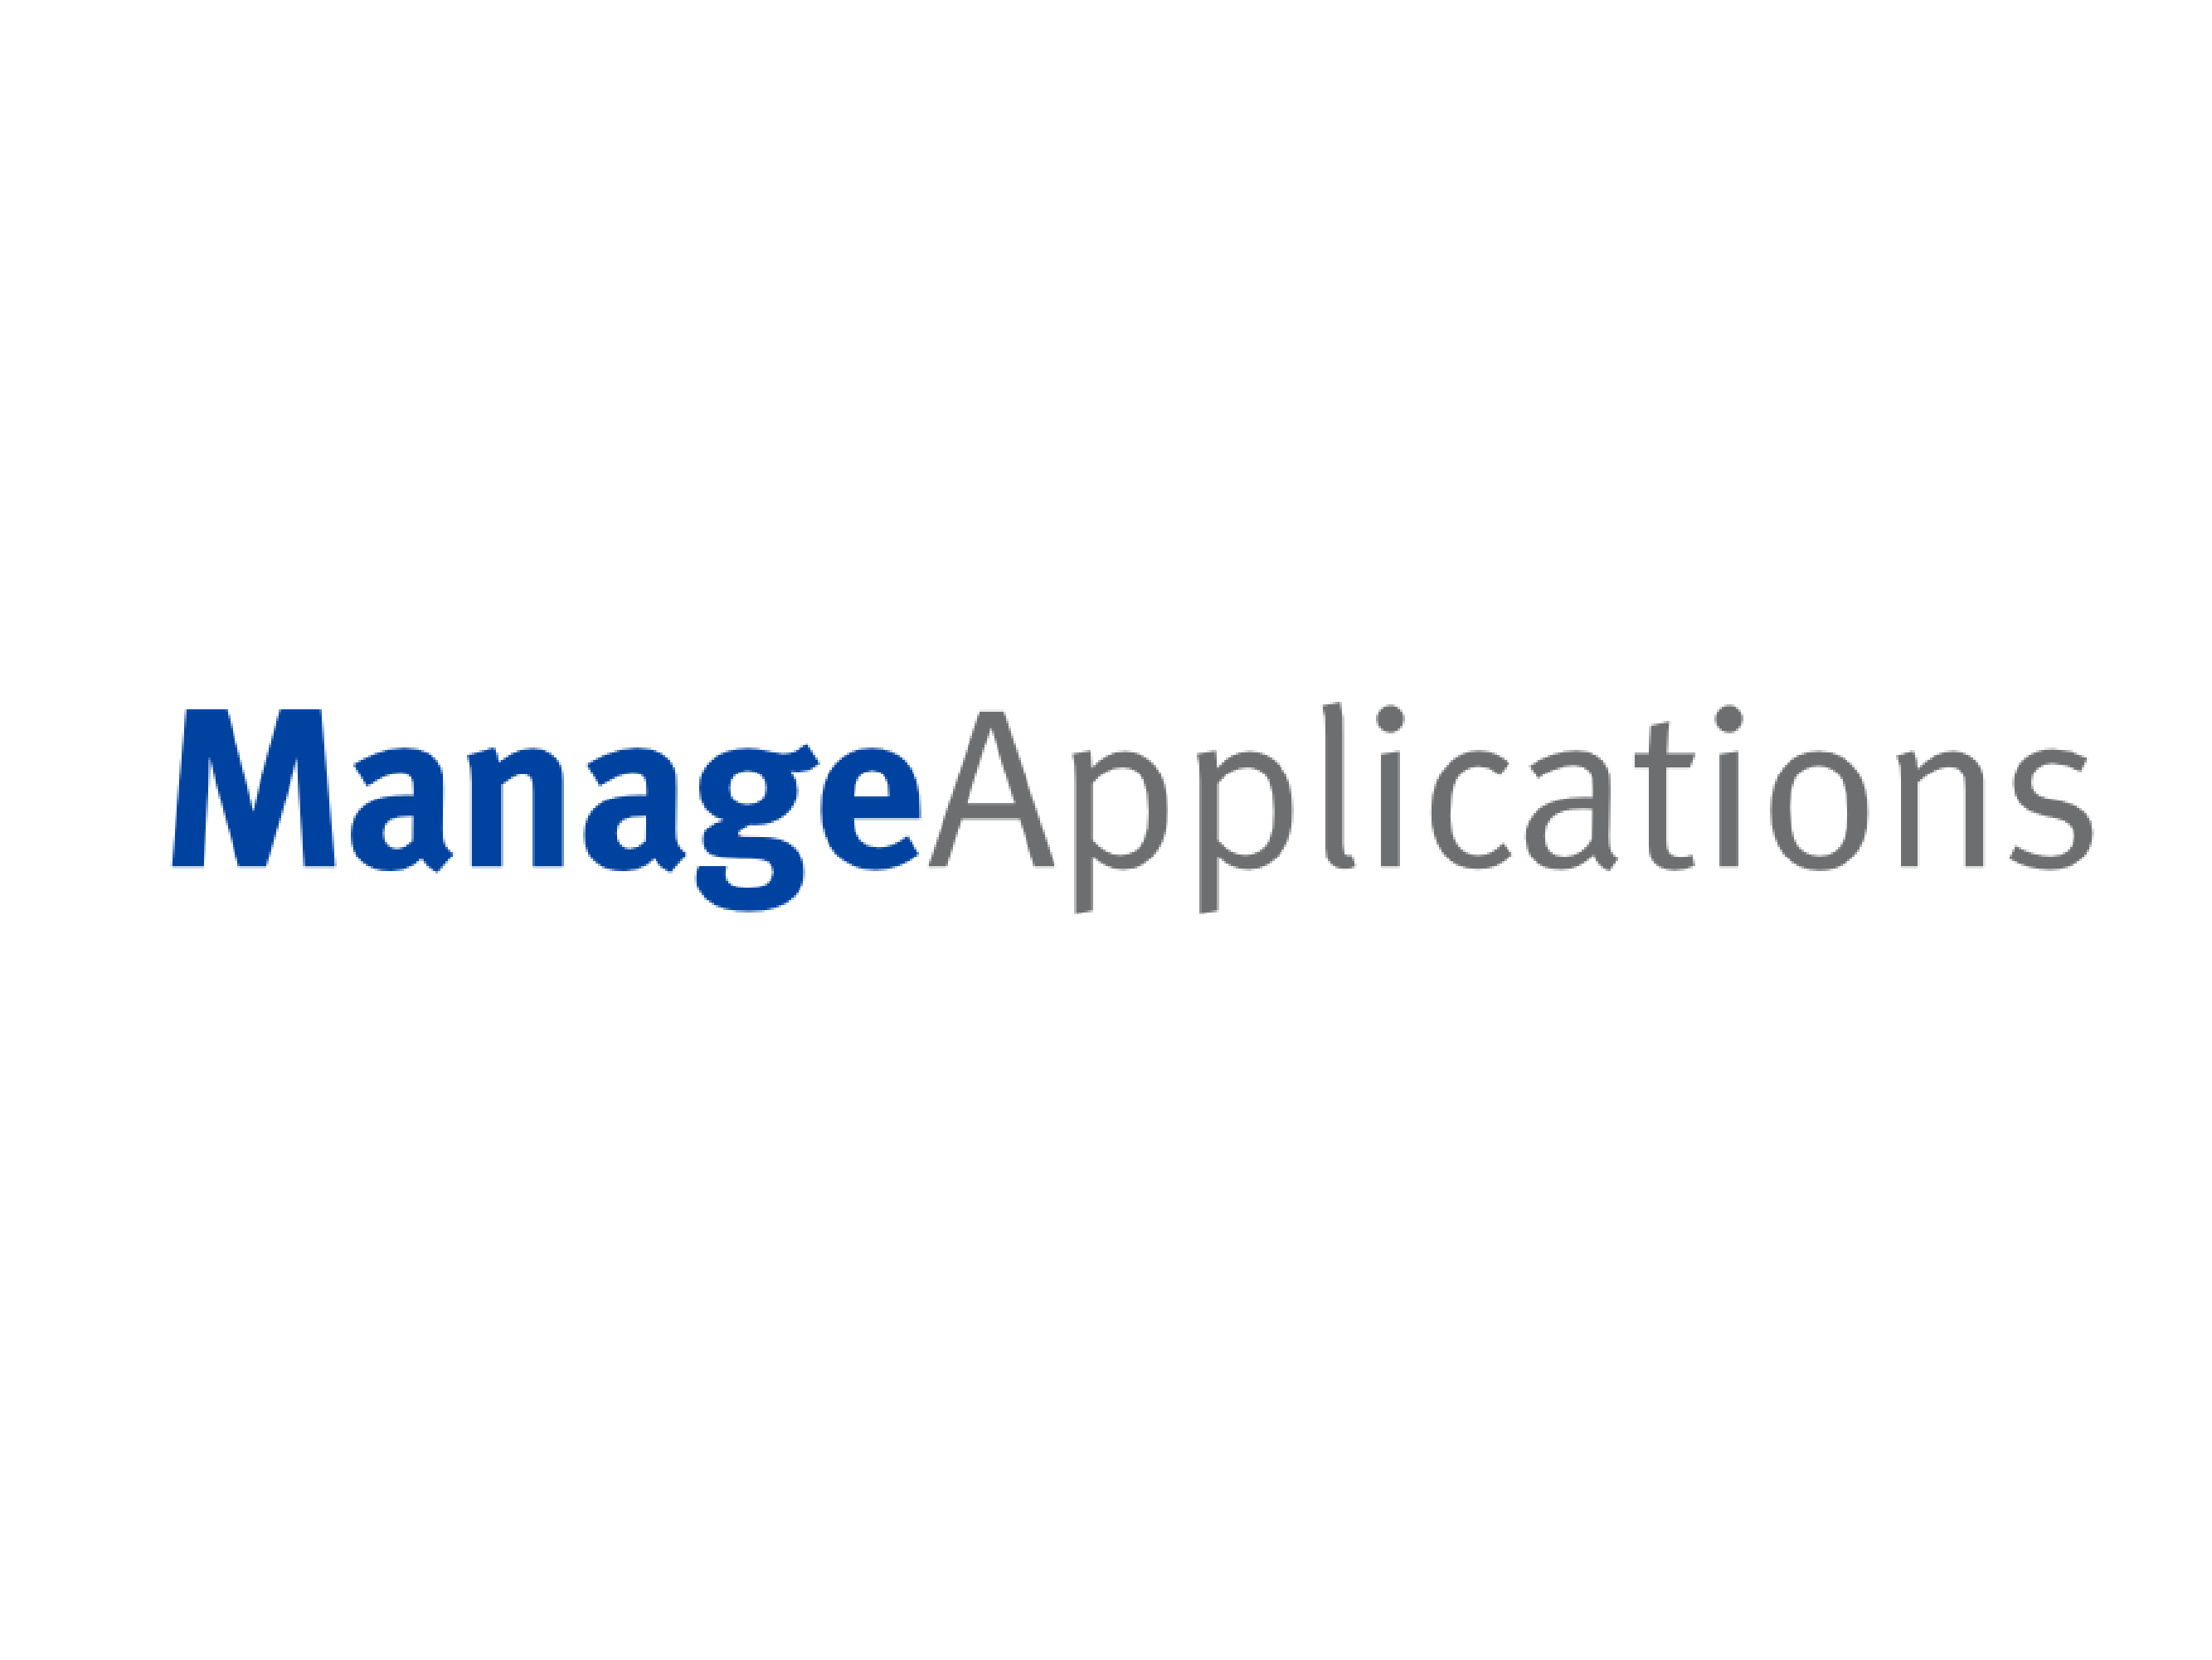 manageapplications-1-11